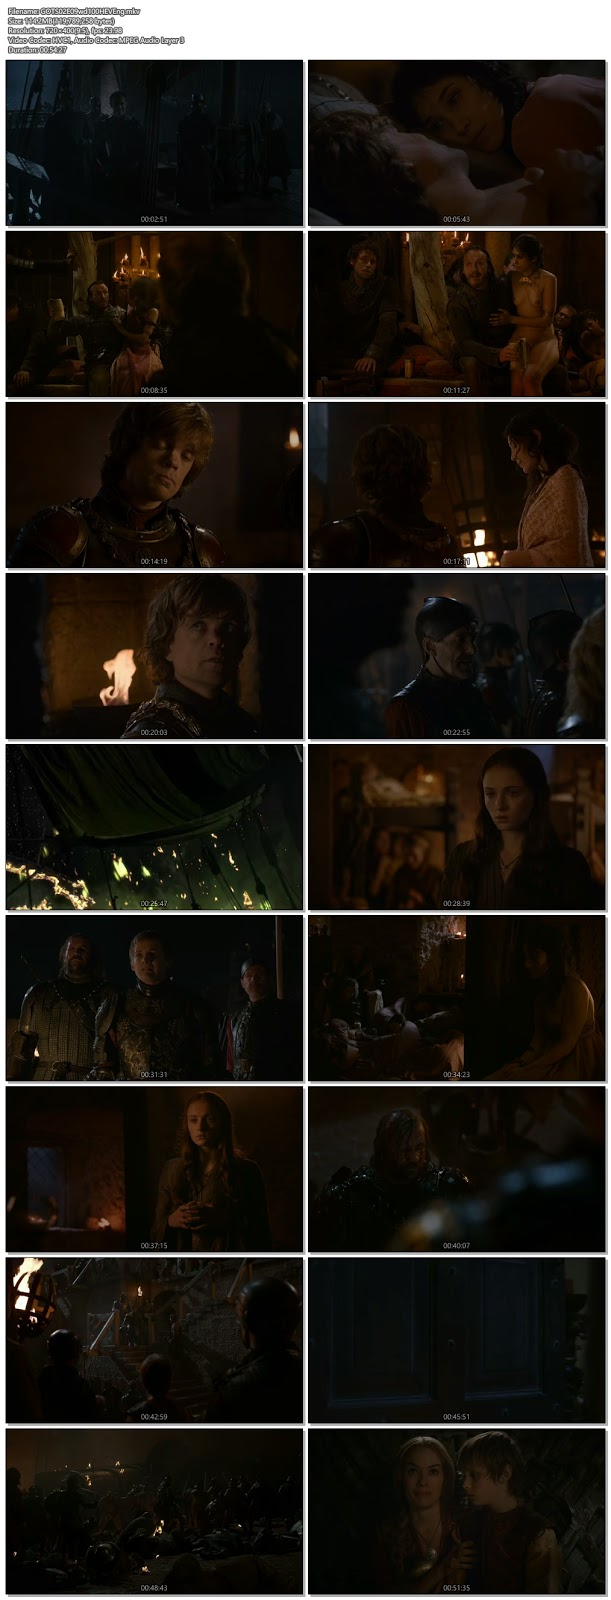 Game Of Thrones S02E10 Dual Audio BRRip 480p 100Mb x265 HEVC download and watch only at world4ufree.fun